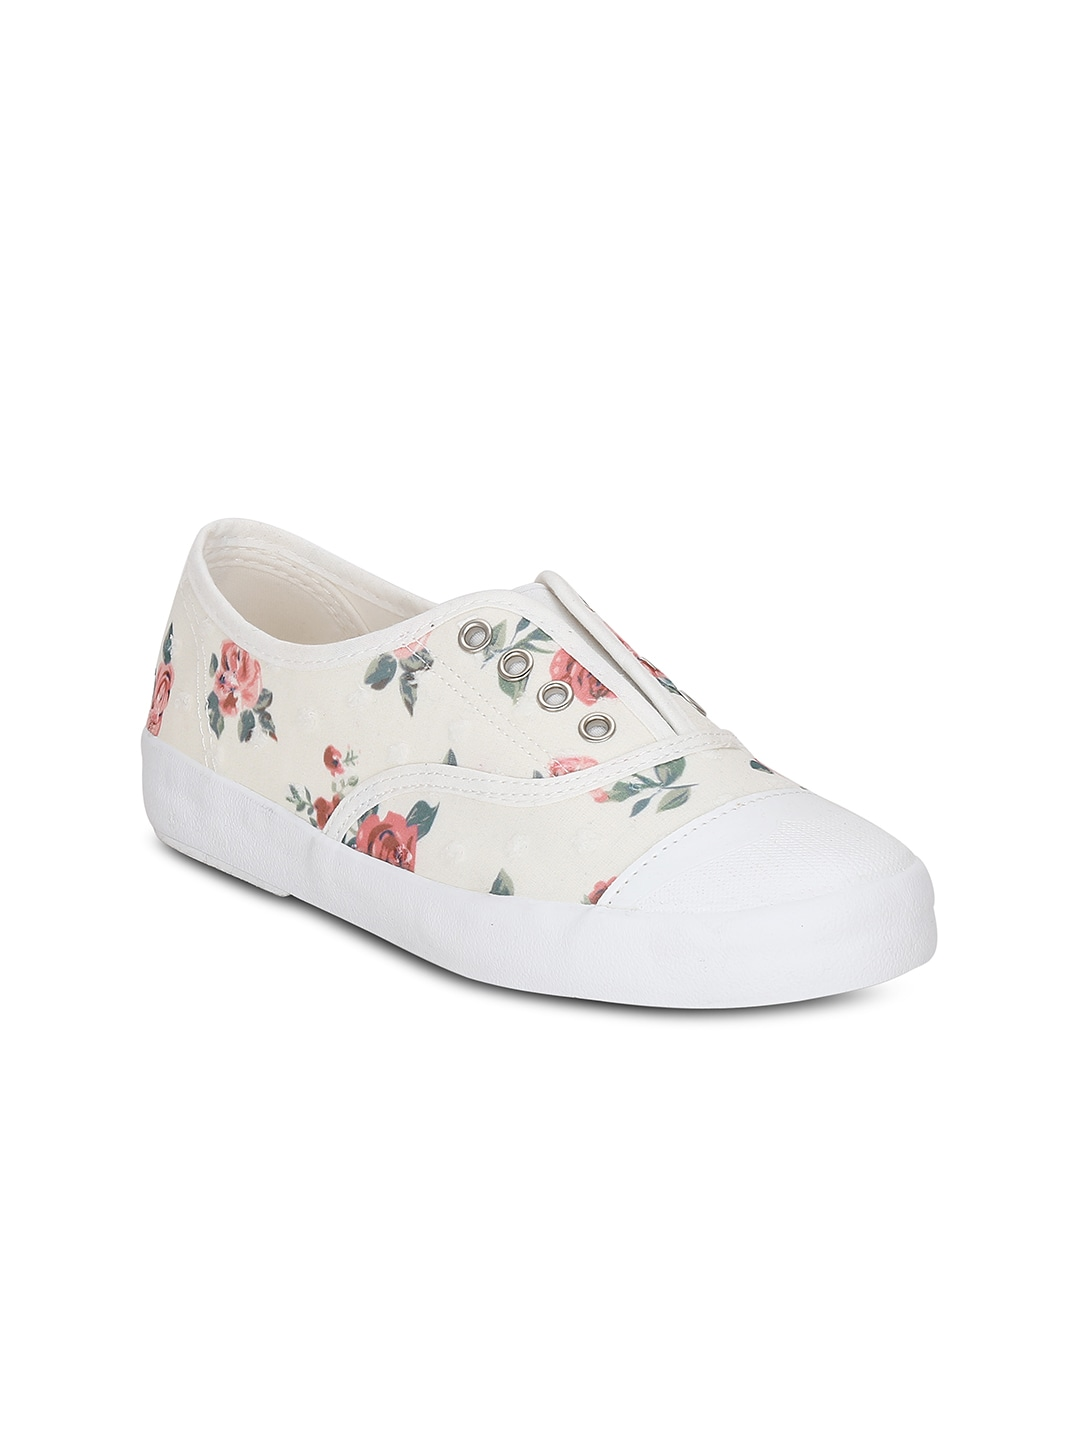 Get Glamr Women Off-White Floral Print Slip-On Sneakers image